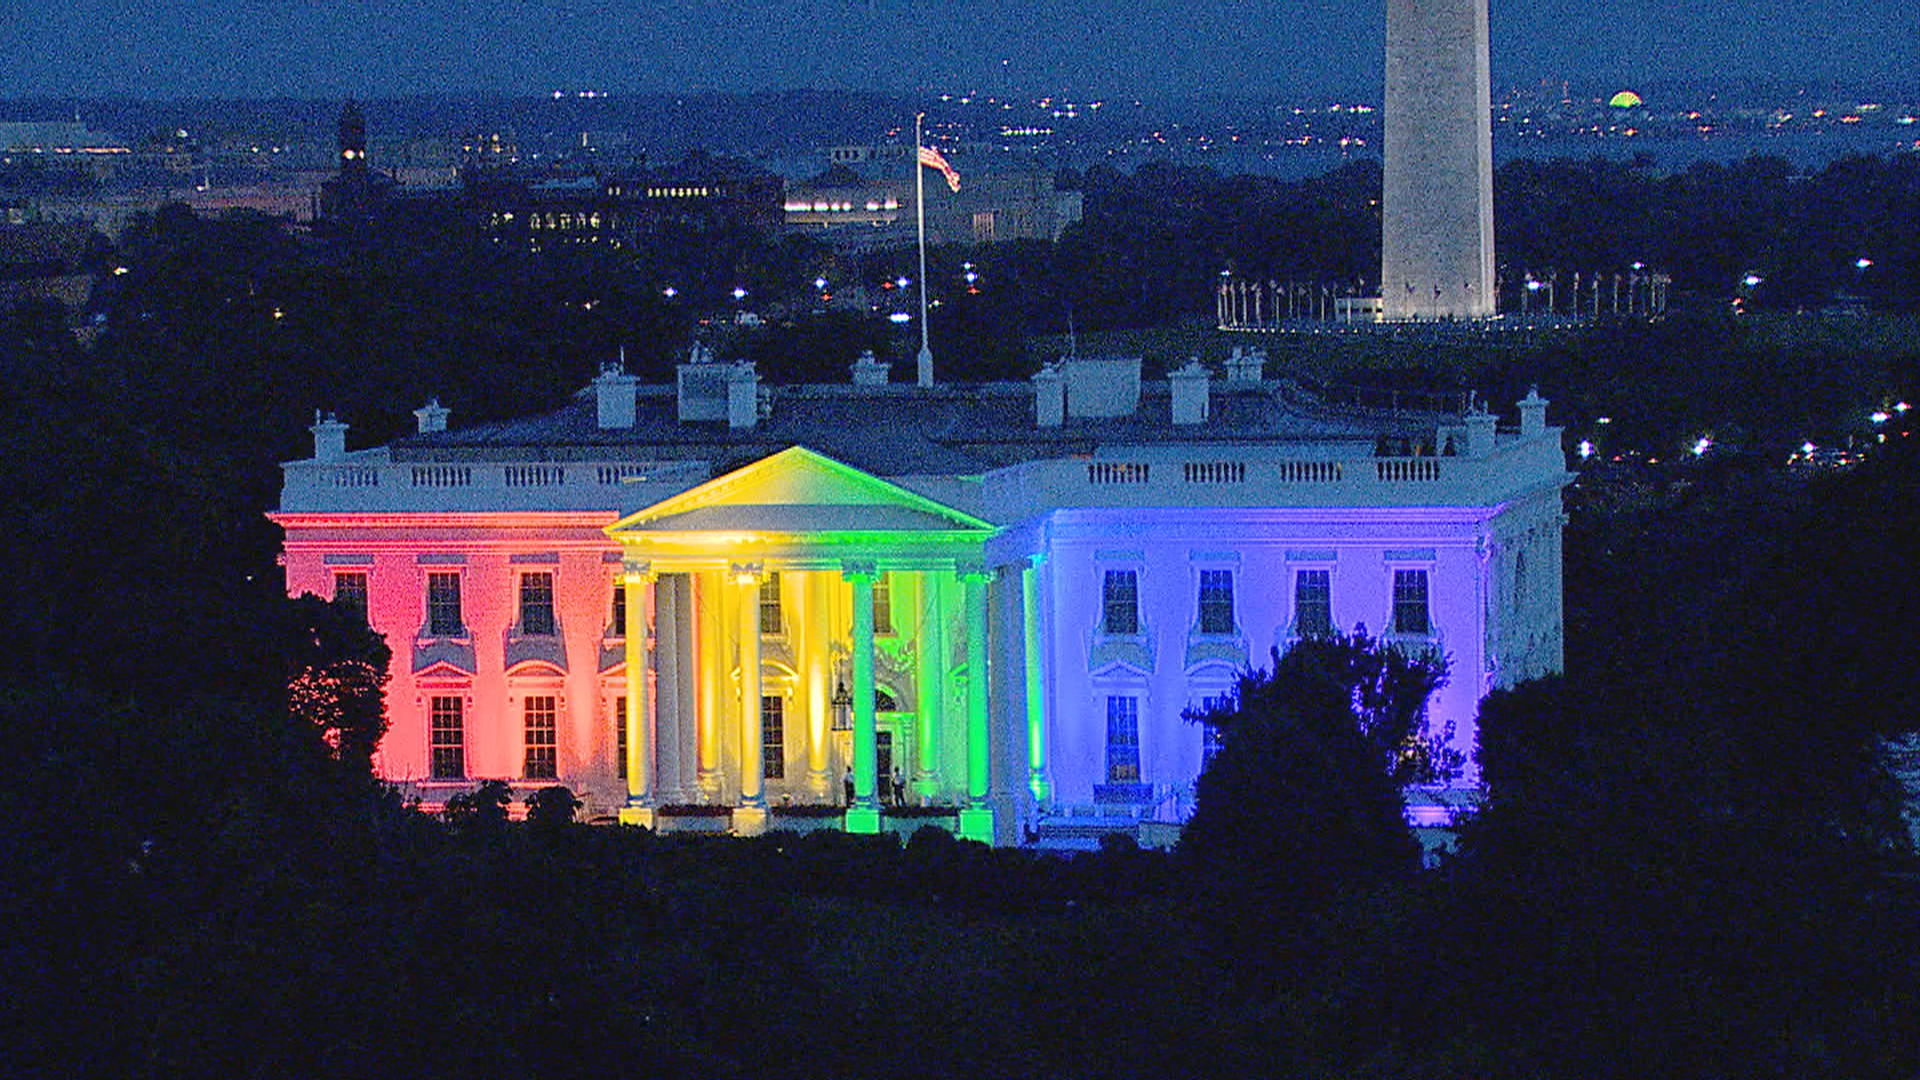 White House 39 Pretty Cool 39 In Rainbow Colors Says Obama